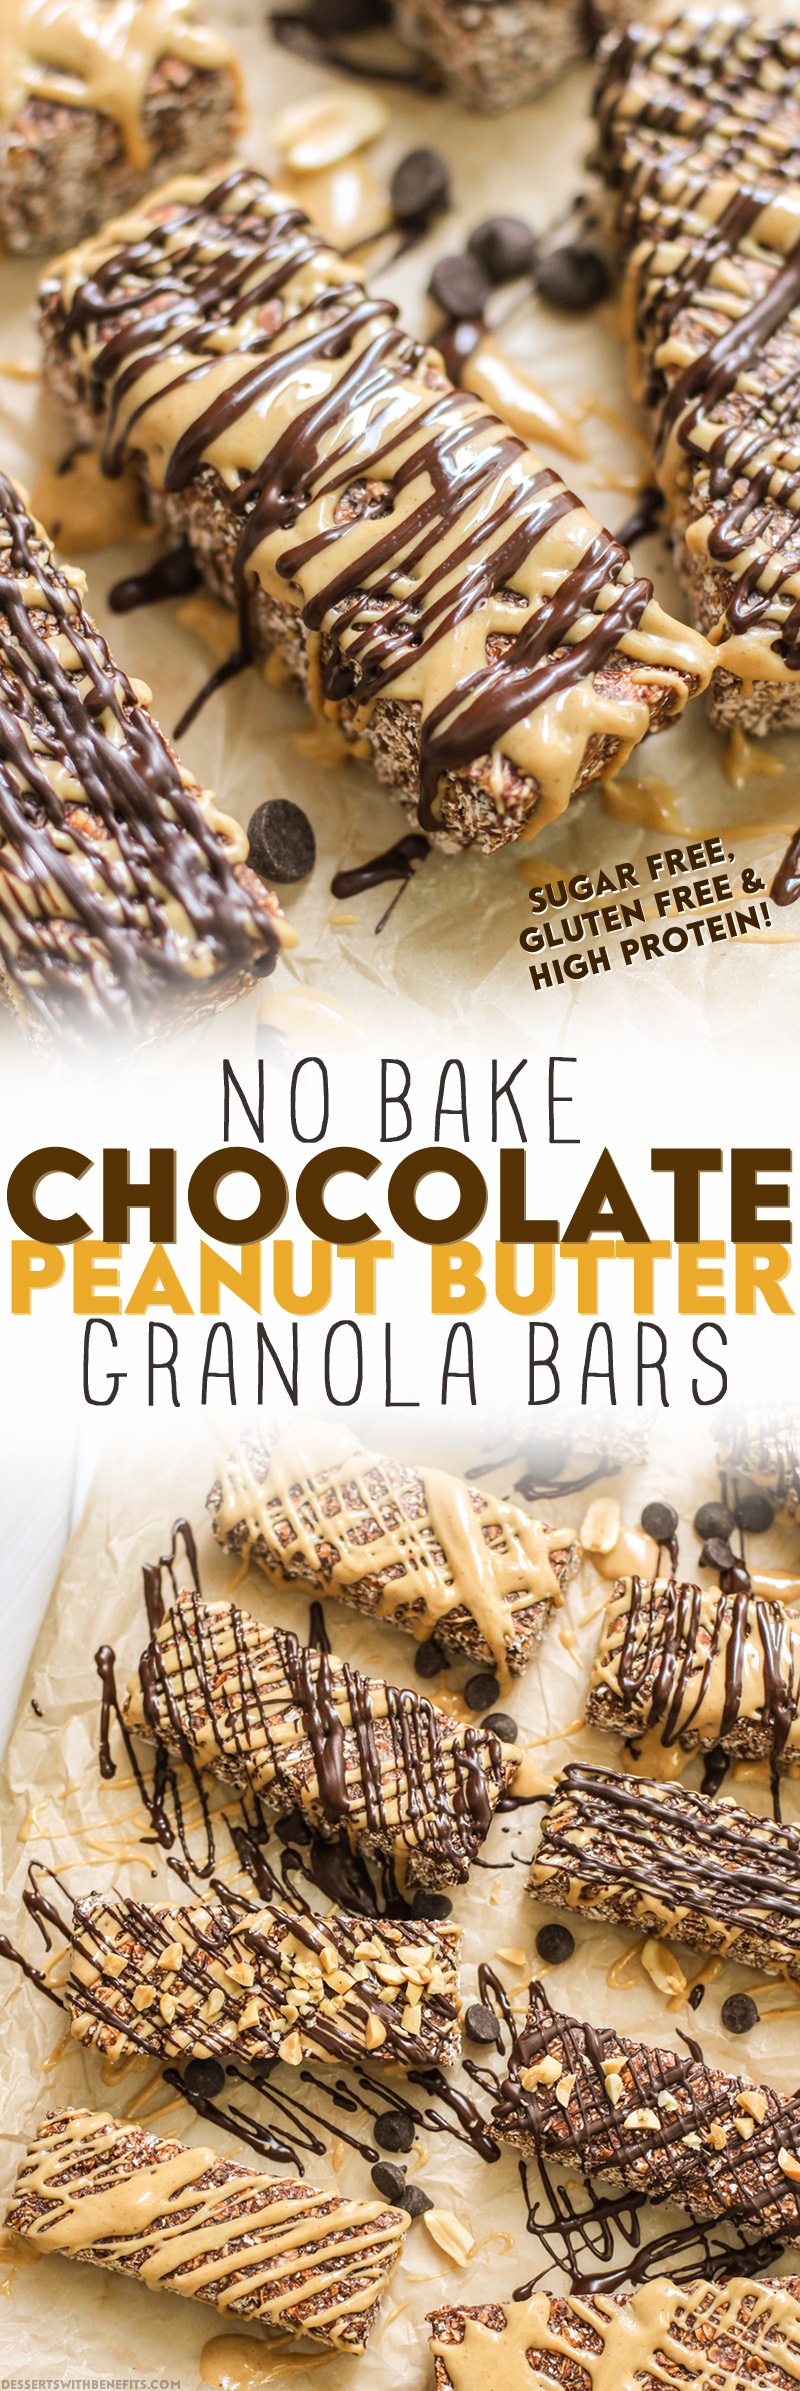 Healthy No-Bake Chocolate Peanut Butter Granola Bars (refined sugar free, high protein, high fiber, gluten free) - Healthy Dessert Recipes at Desserts with Benefits